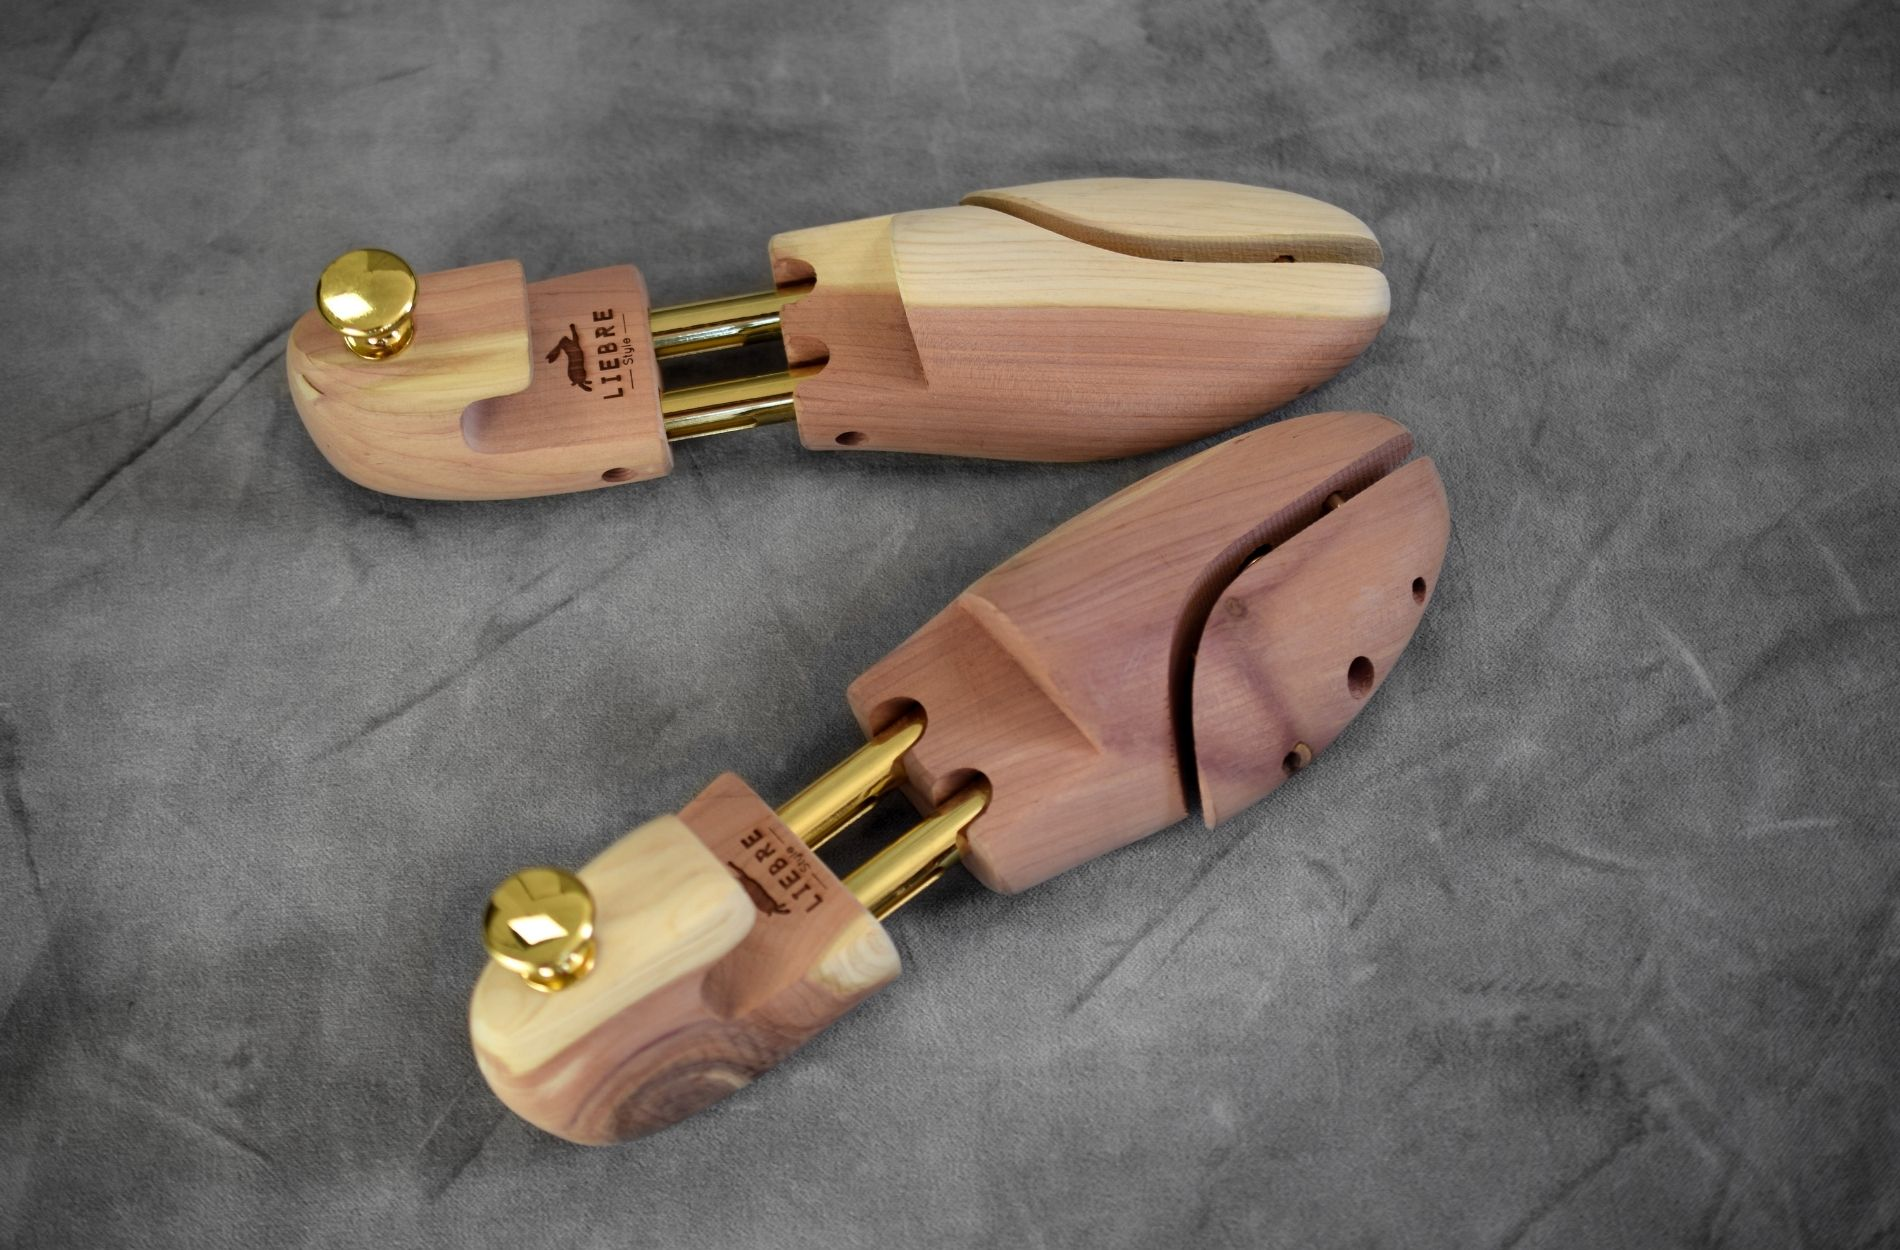 cedar wood shoes trees with logo of liebre style and metal details